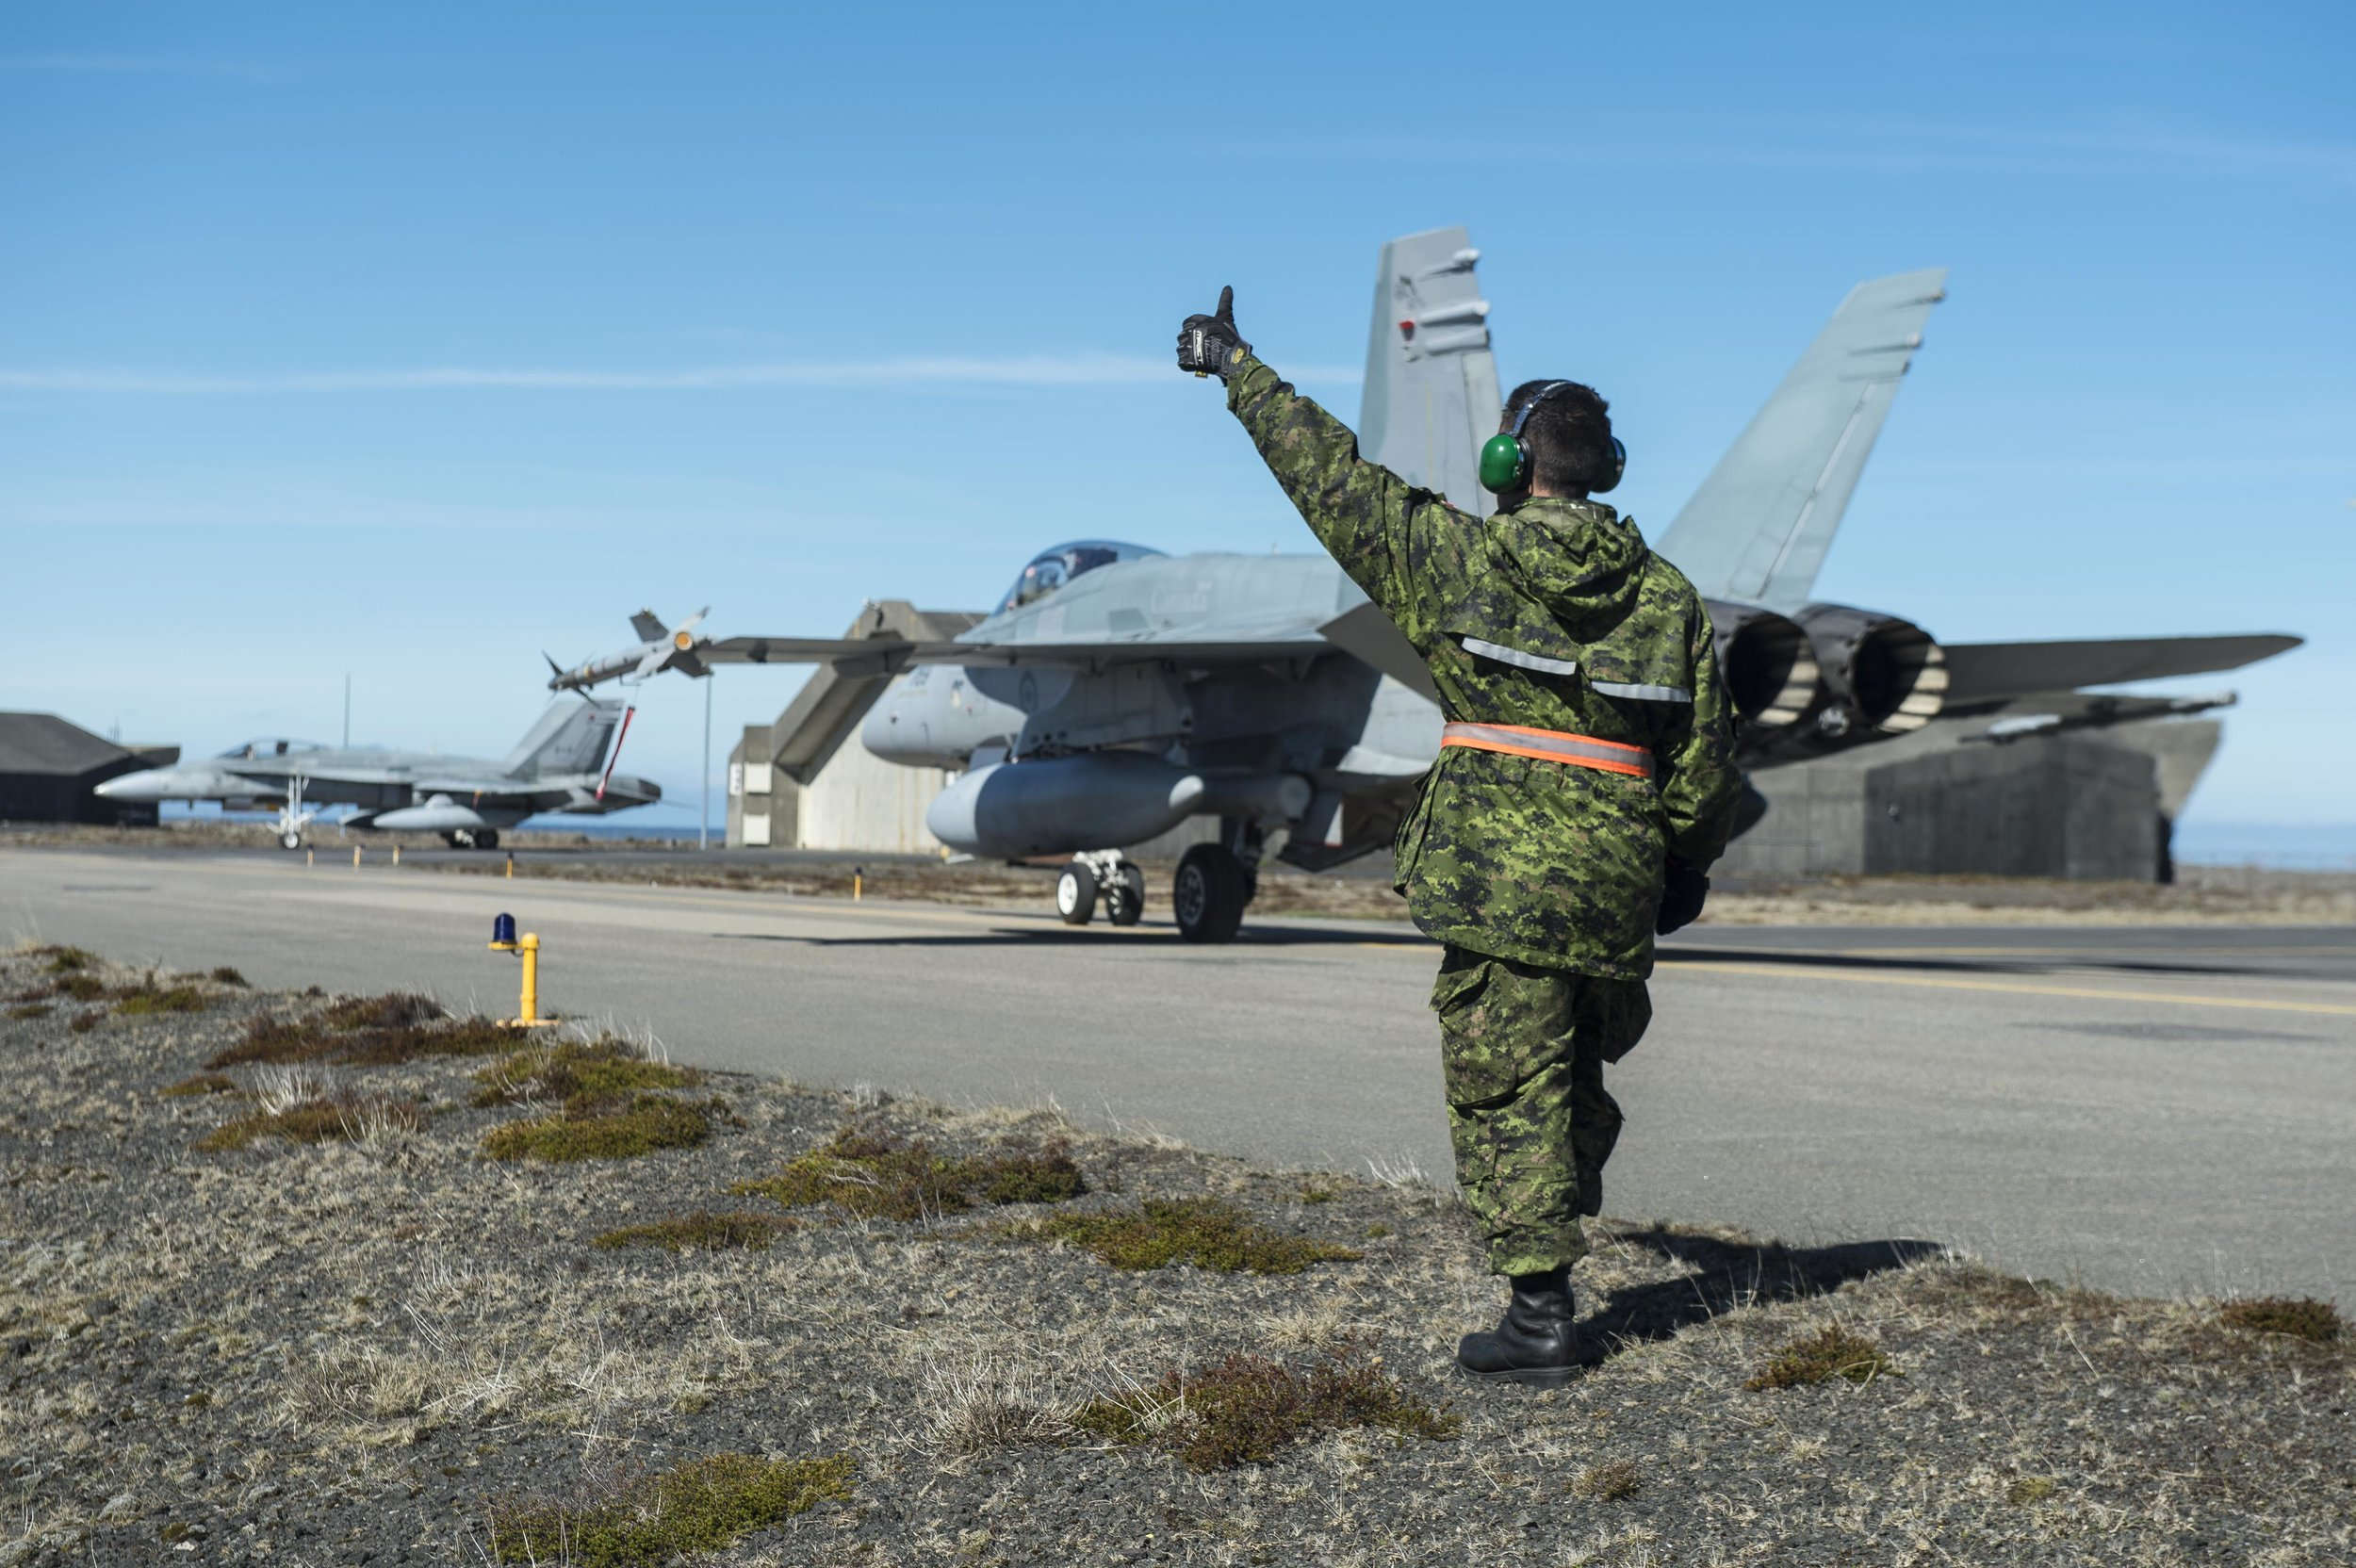 "Weapons technician, Cpl Chad Doley-Bourget indicates a thumbs up for the CF-188 Hornet to return to the hangar in Keflavik, Iceland during Operation REASSURANCE, May 19, 2017. According to the Liberal's Defence Review, ""Canada will procure a fighter capability of 88 jets to replace the aging CF-18 fleet"" in order to meet NATO and NORAD commitments. (Cpl Gary Calvé, ATF Iceland)"